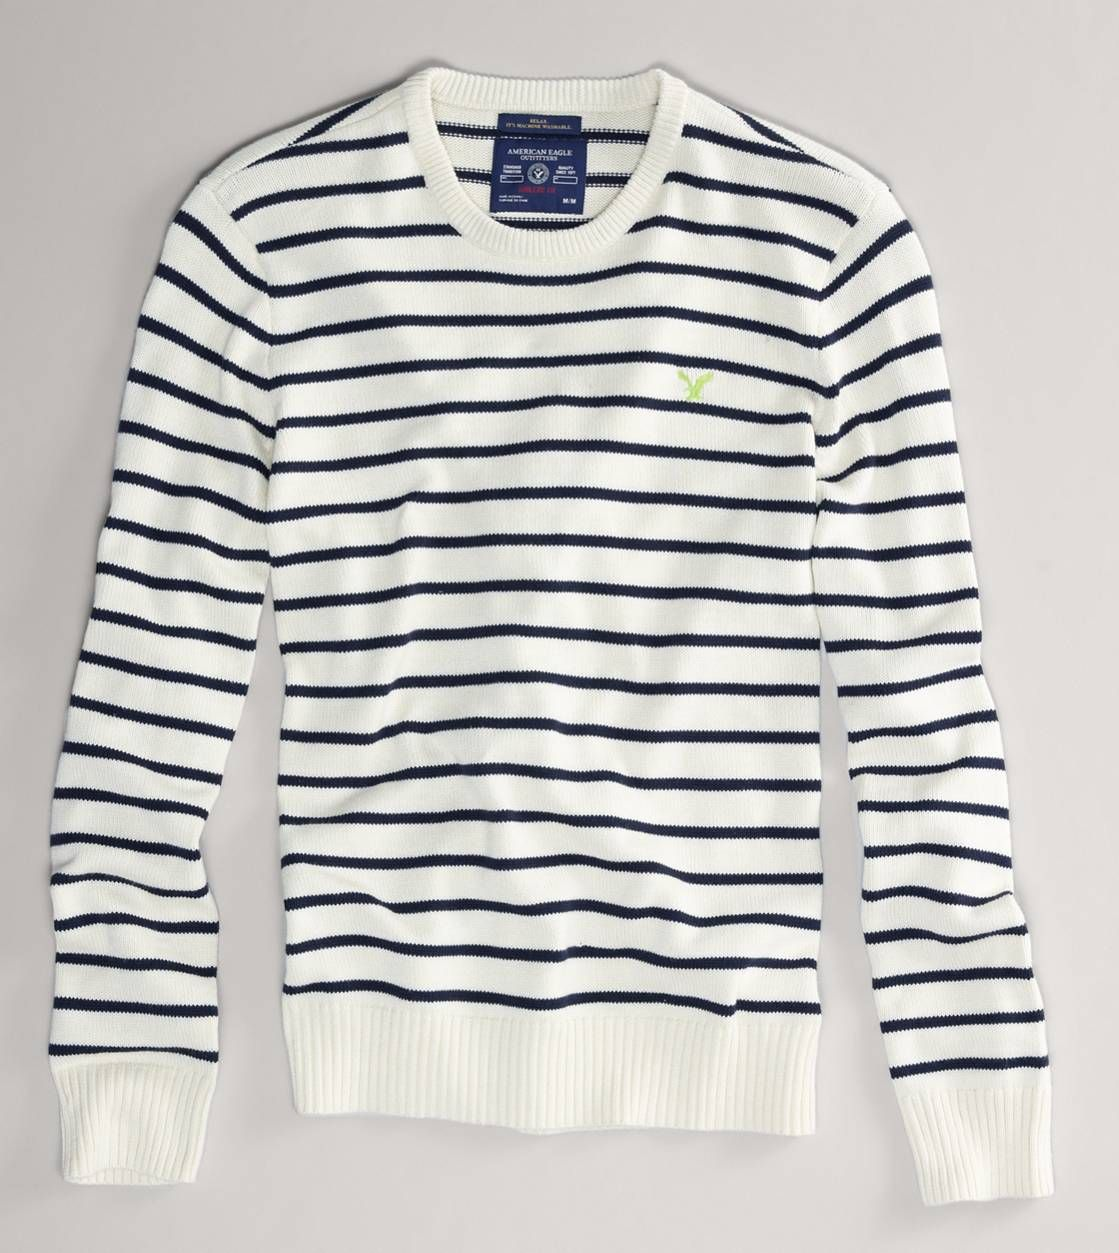 Ae Striped Crew Sweater The Best Time To Wear A Striped Sweater Is